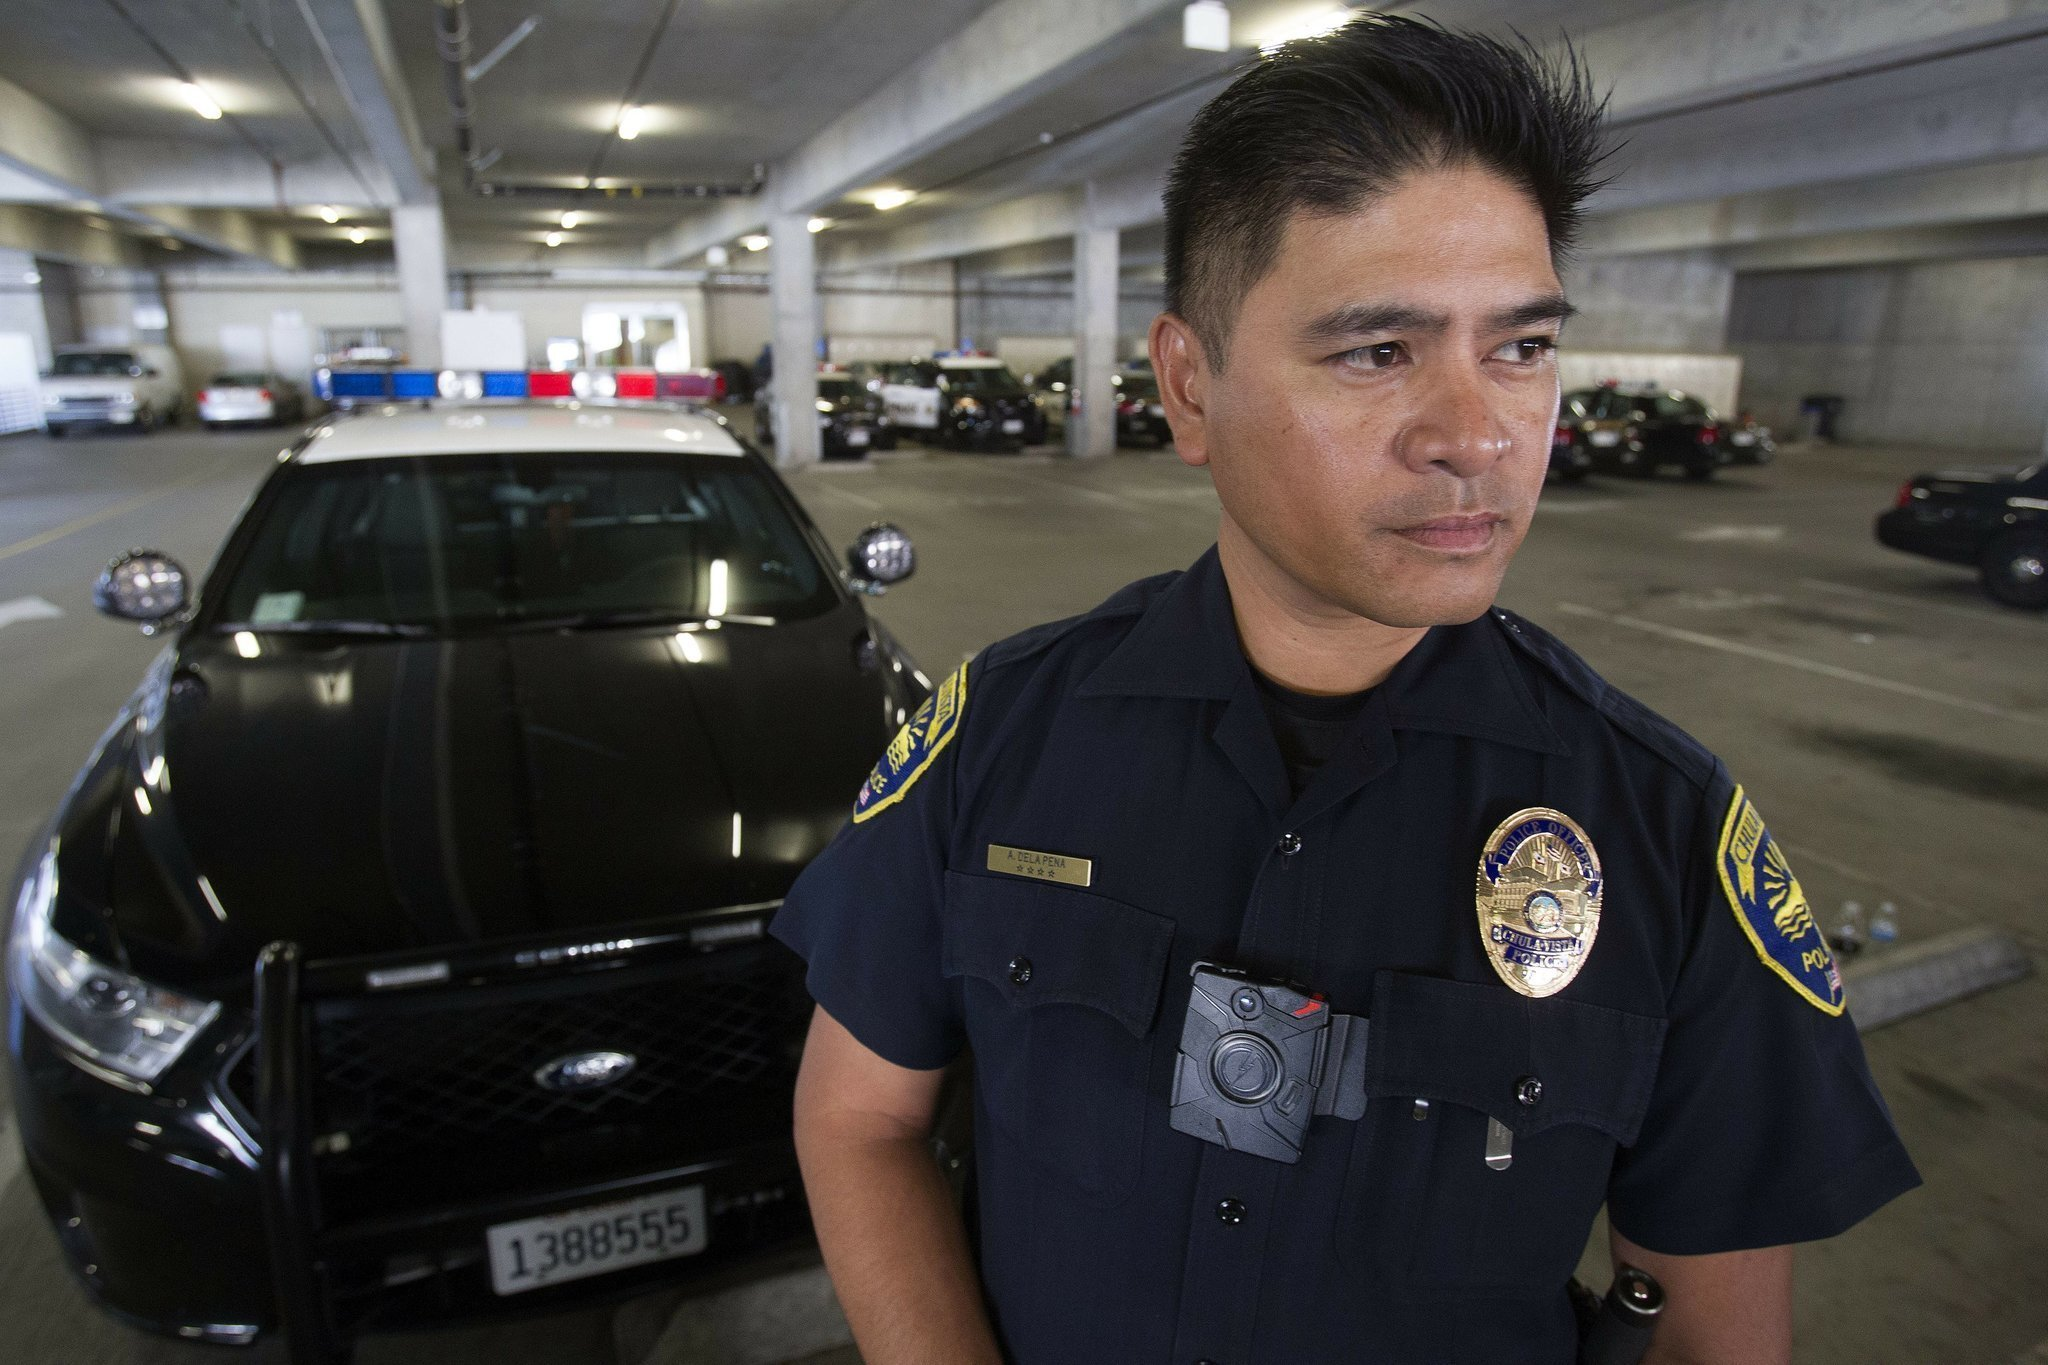 police right to view body camera film debated the san diego police right to view body camera film debated the san diego union tribune